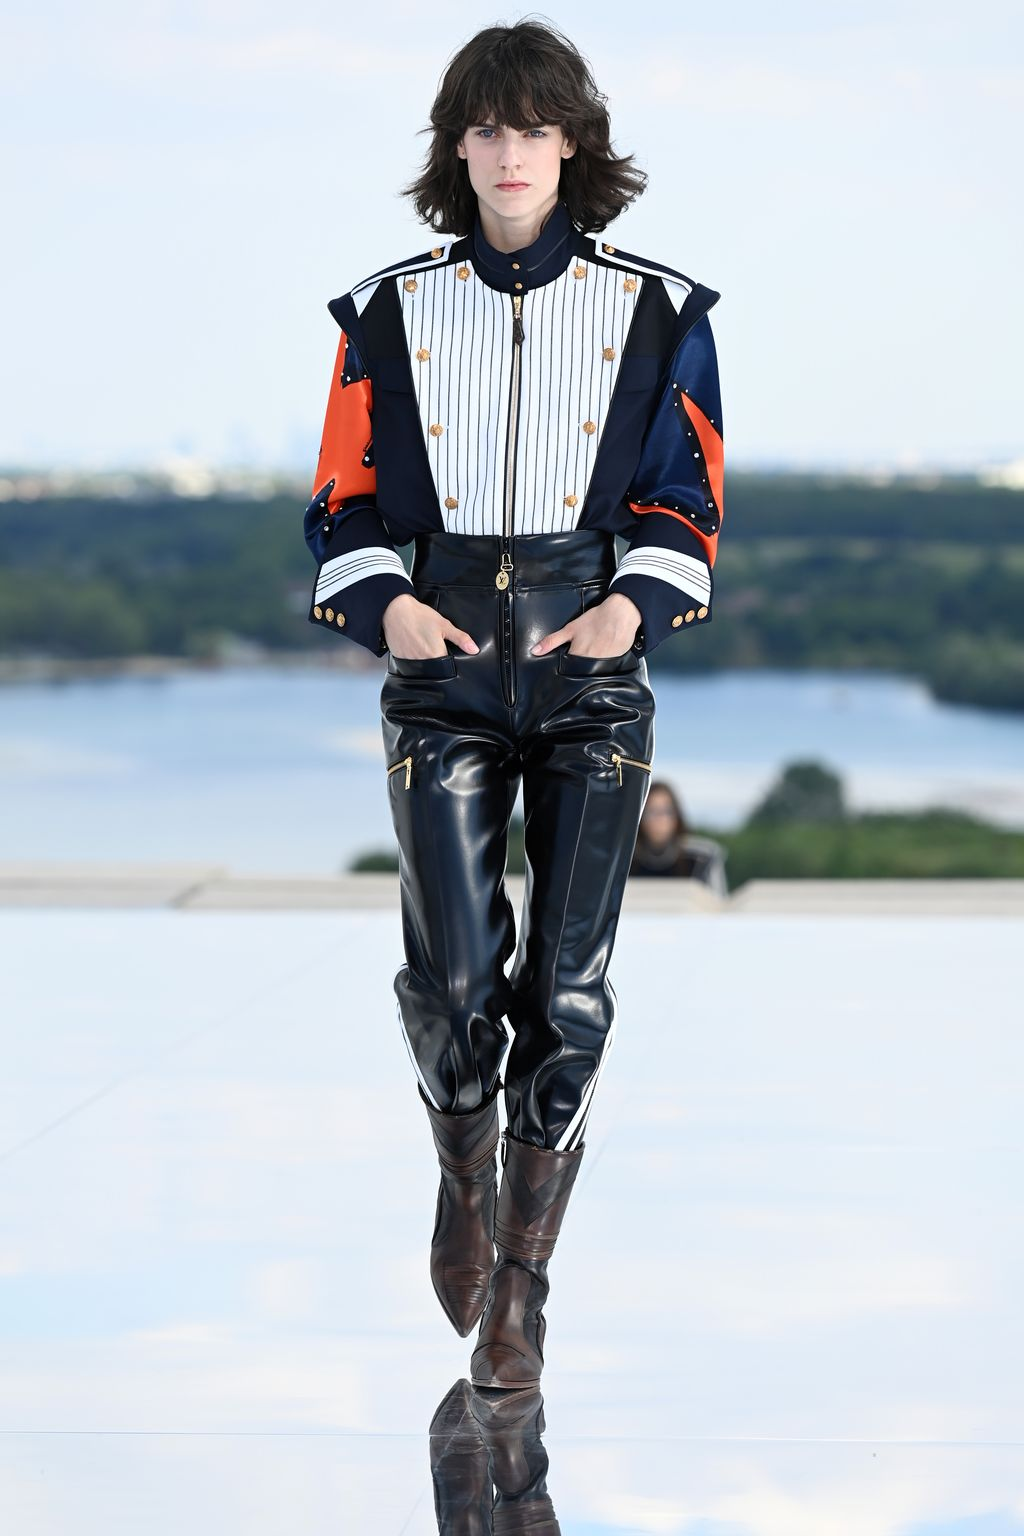 CERGY, FRANCE - JUNE 08: In this image released on June 15th, Miriam Sanchez walks the runway during the Louis Vuitton 2022 Cruise Collection on June 08, 2021 in Cergy, France. (Photo by Pascal Le Segretain/Getty Images)